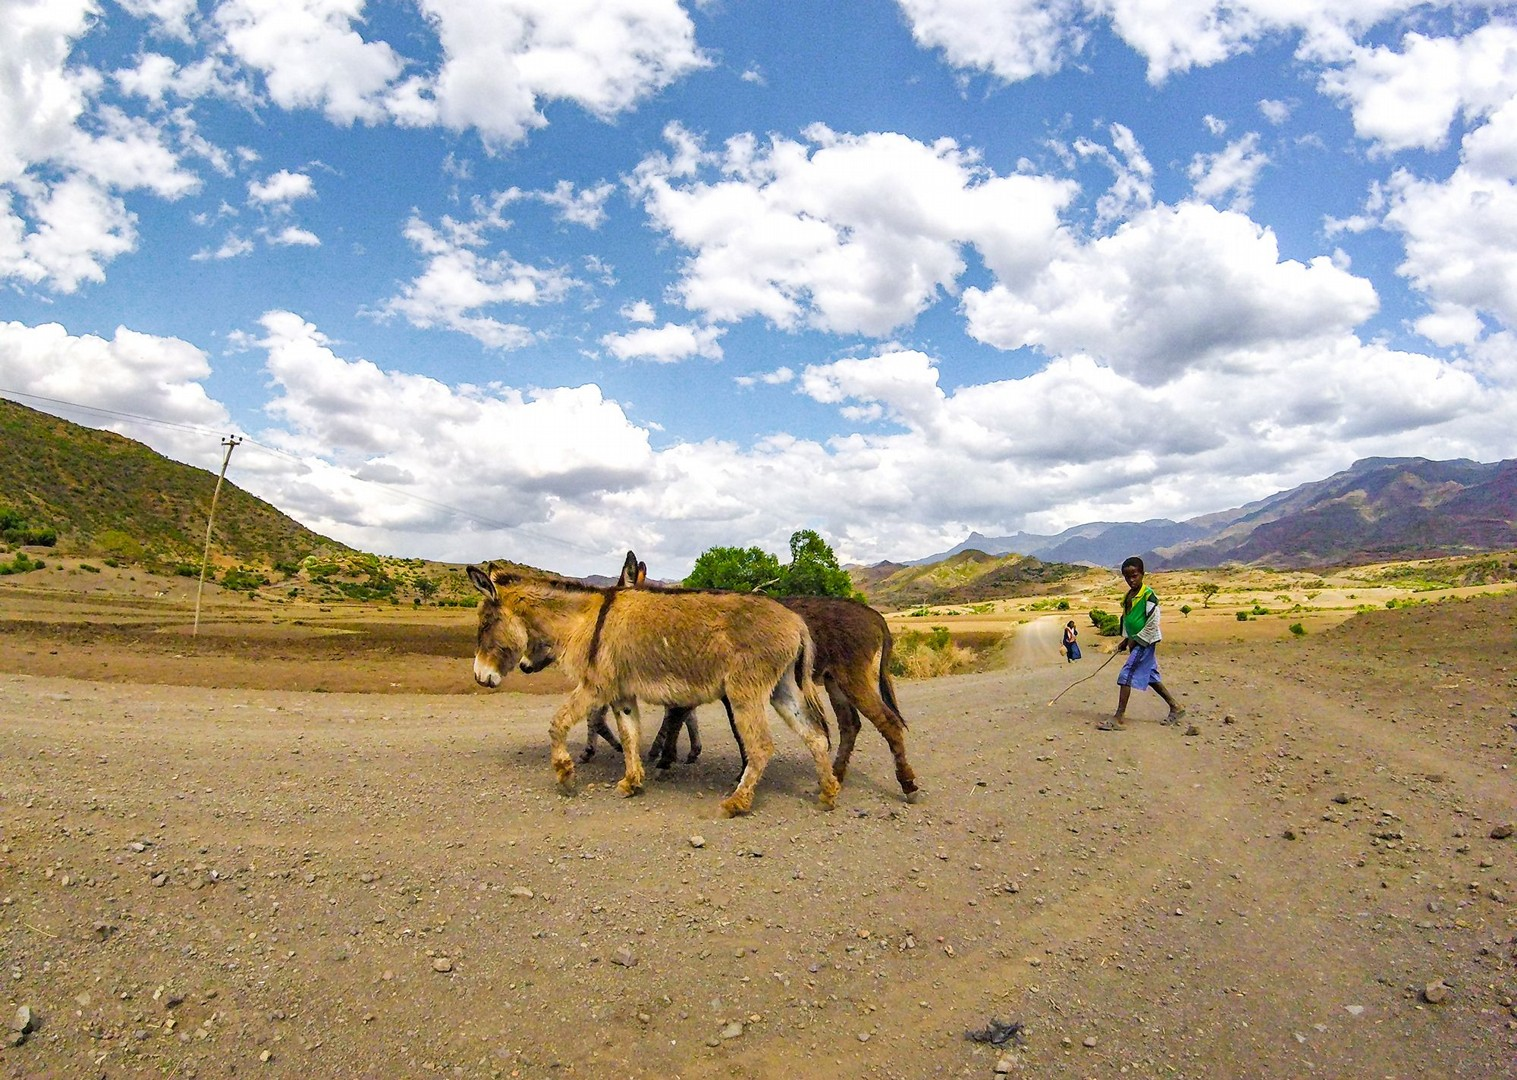 local-culture-people-ethiopia-cycling-adventure-skedaddle.jpg - NEW! Ethiopia - Enchanting Ethiopia - Cycling Adventures